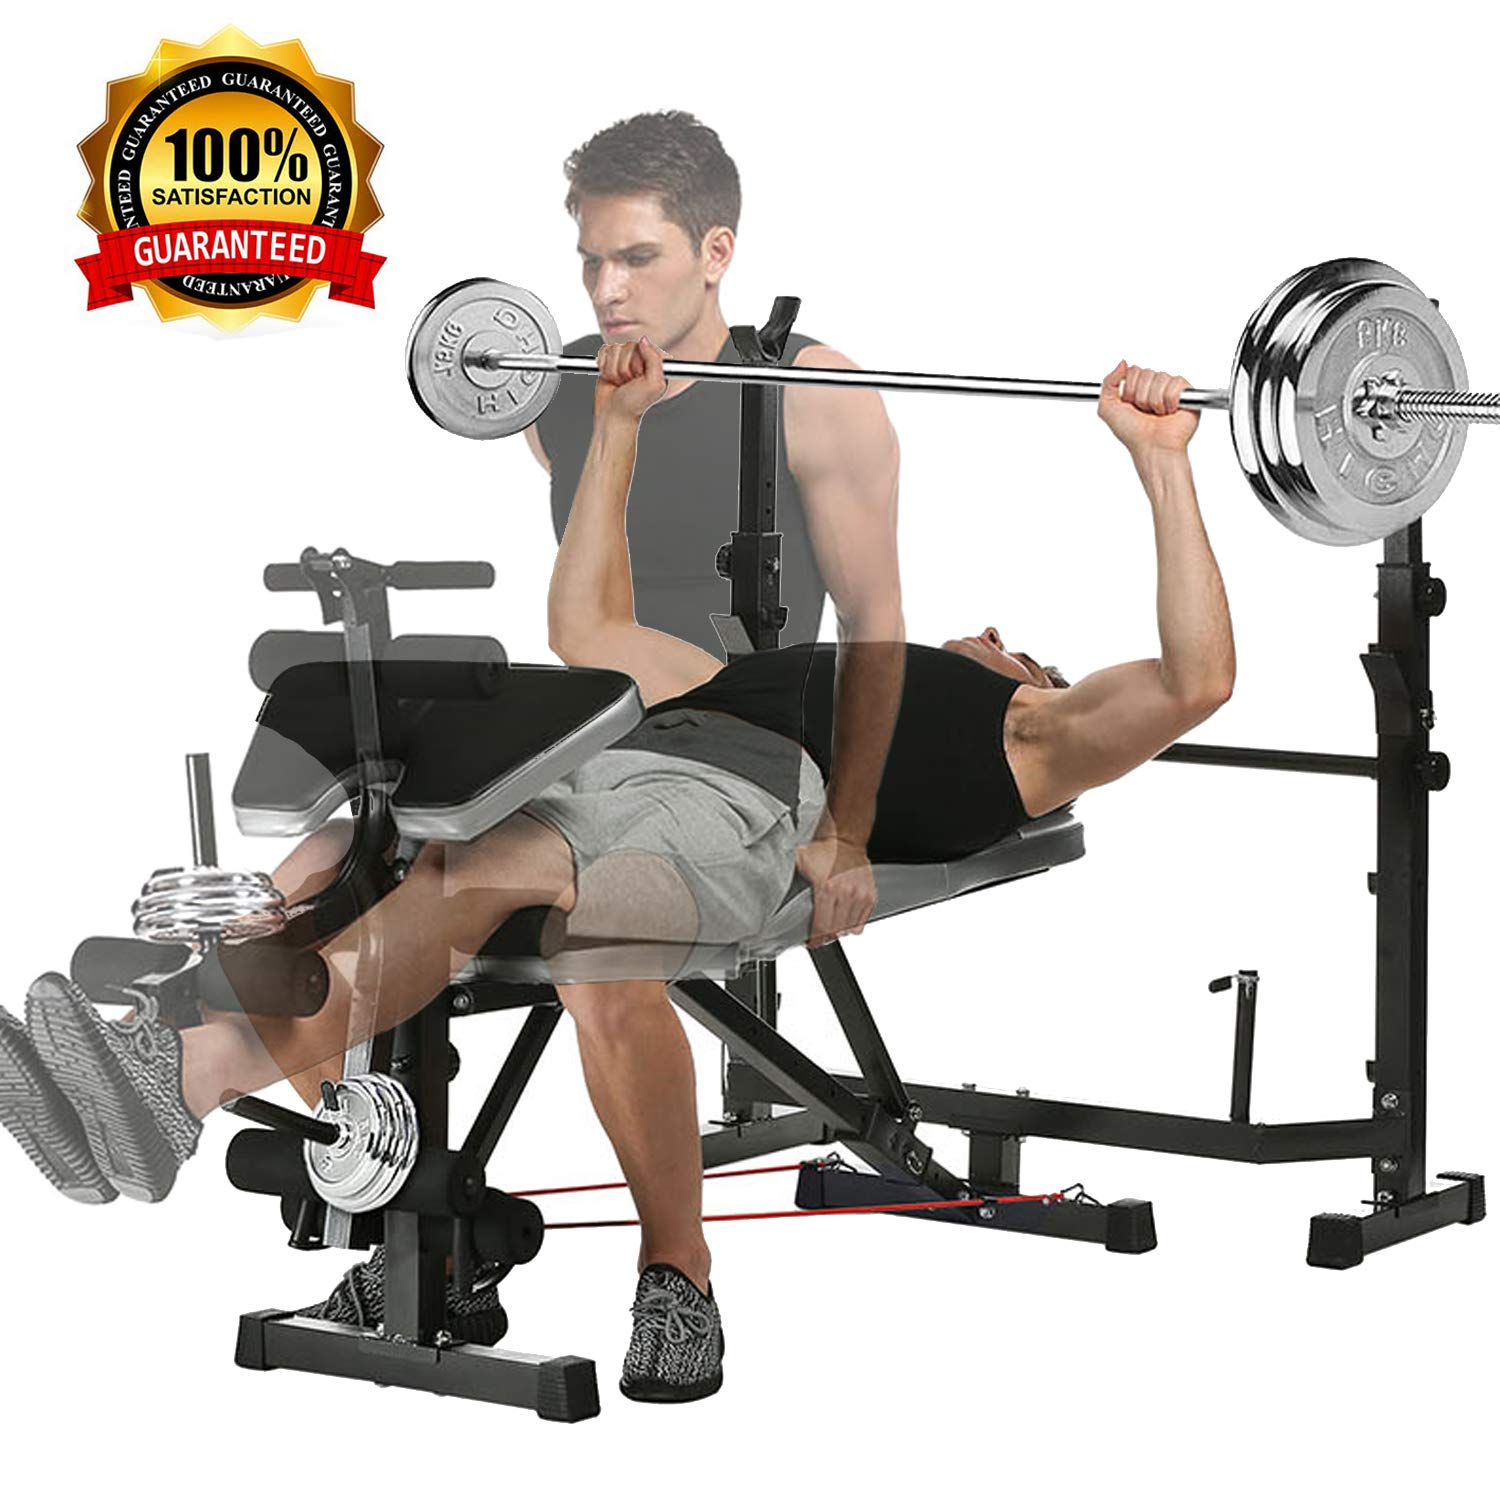 Super Juane Olympic Weight Bench And Power Tower Workout Dip Station With Squat Rack Leg Developer Preacher Curl For Weight Lifting And Strength Training Pdpeps Interior Chair Design Pdpepsorg